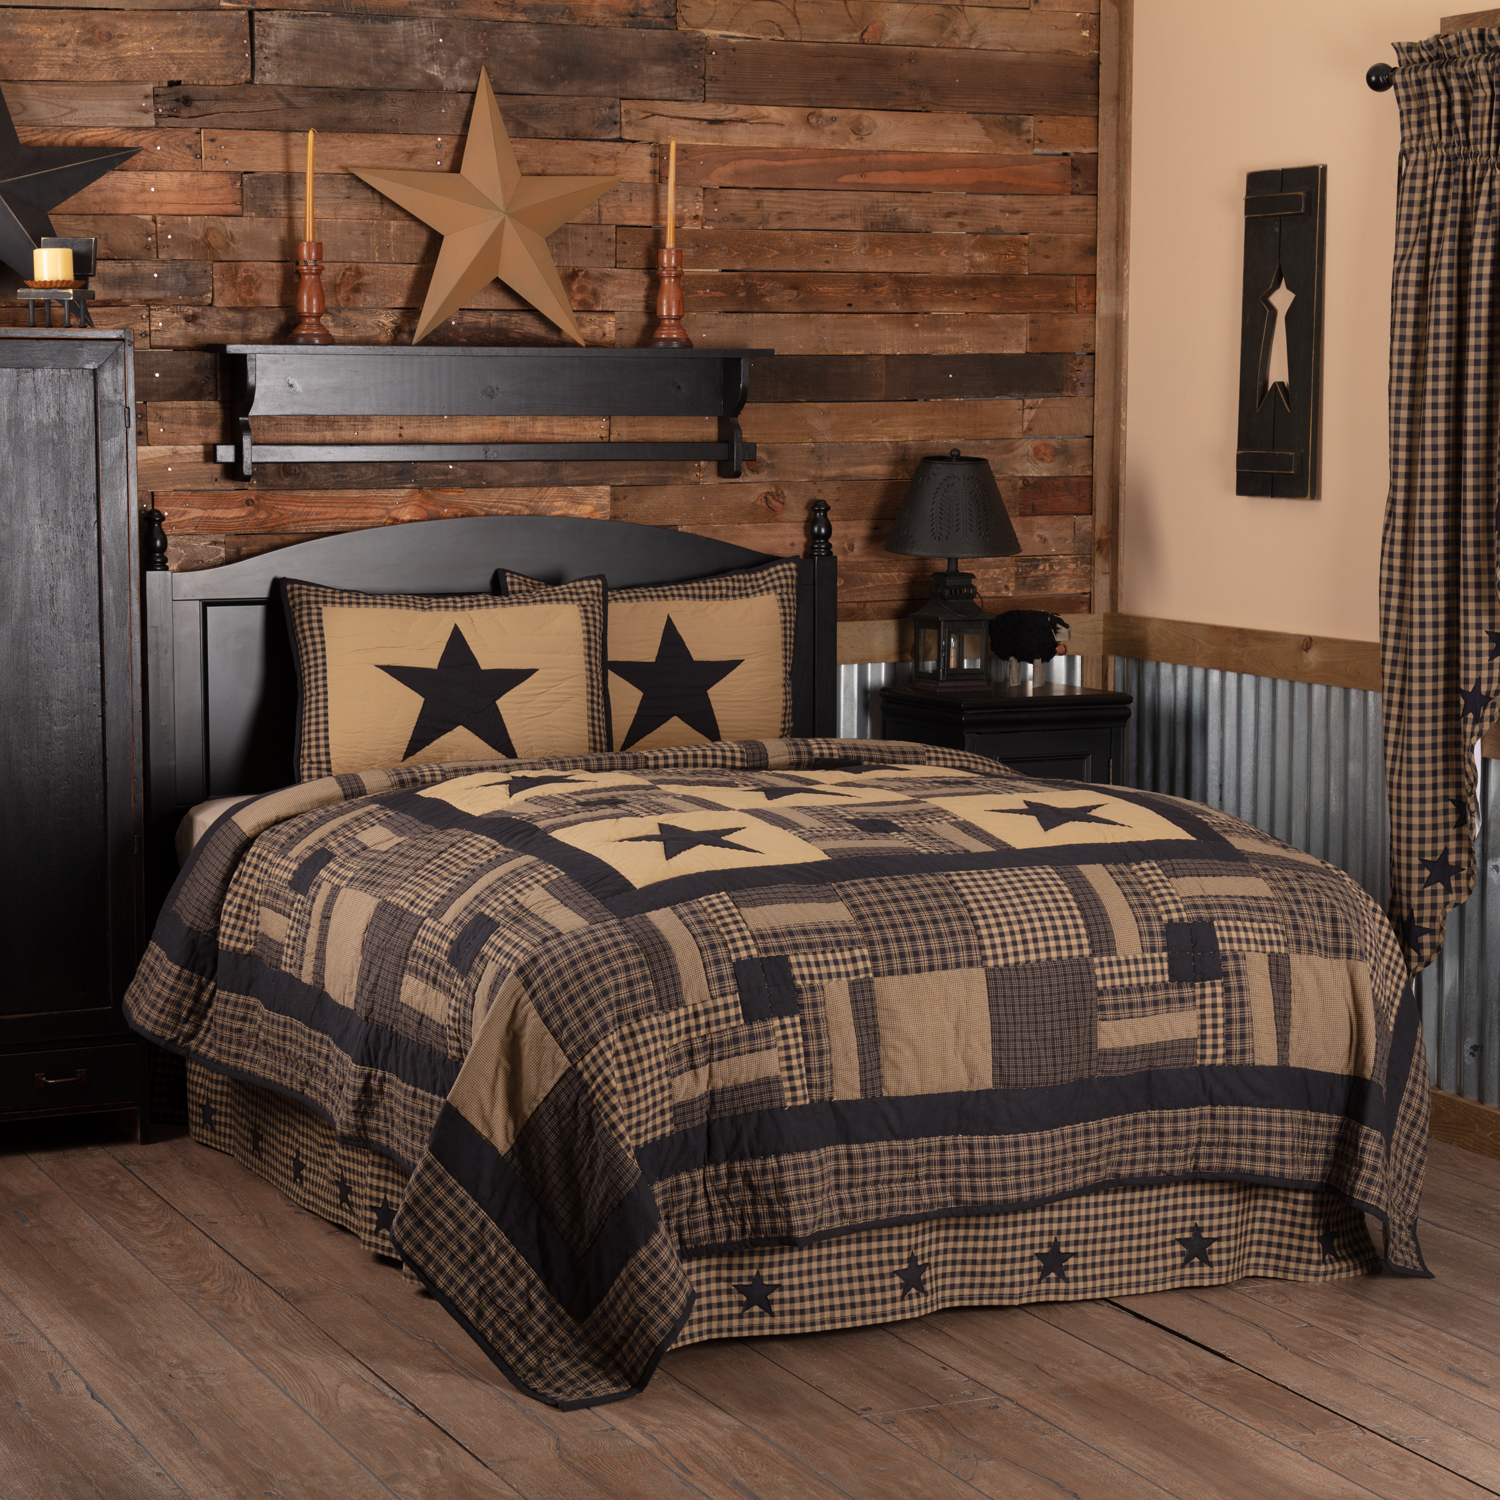 Black Check Star California King Quilt Set; 1-Quilt 130Wx115L w/2 Shams 21x37